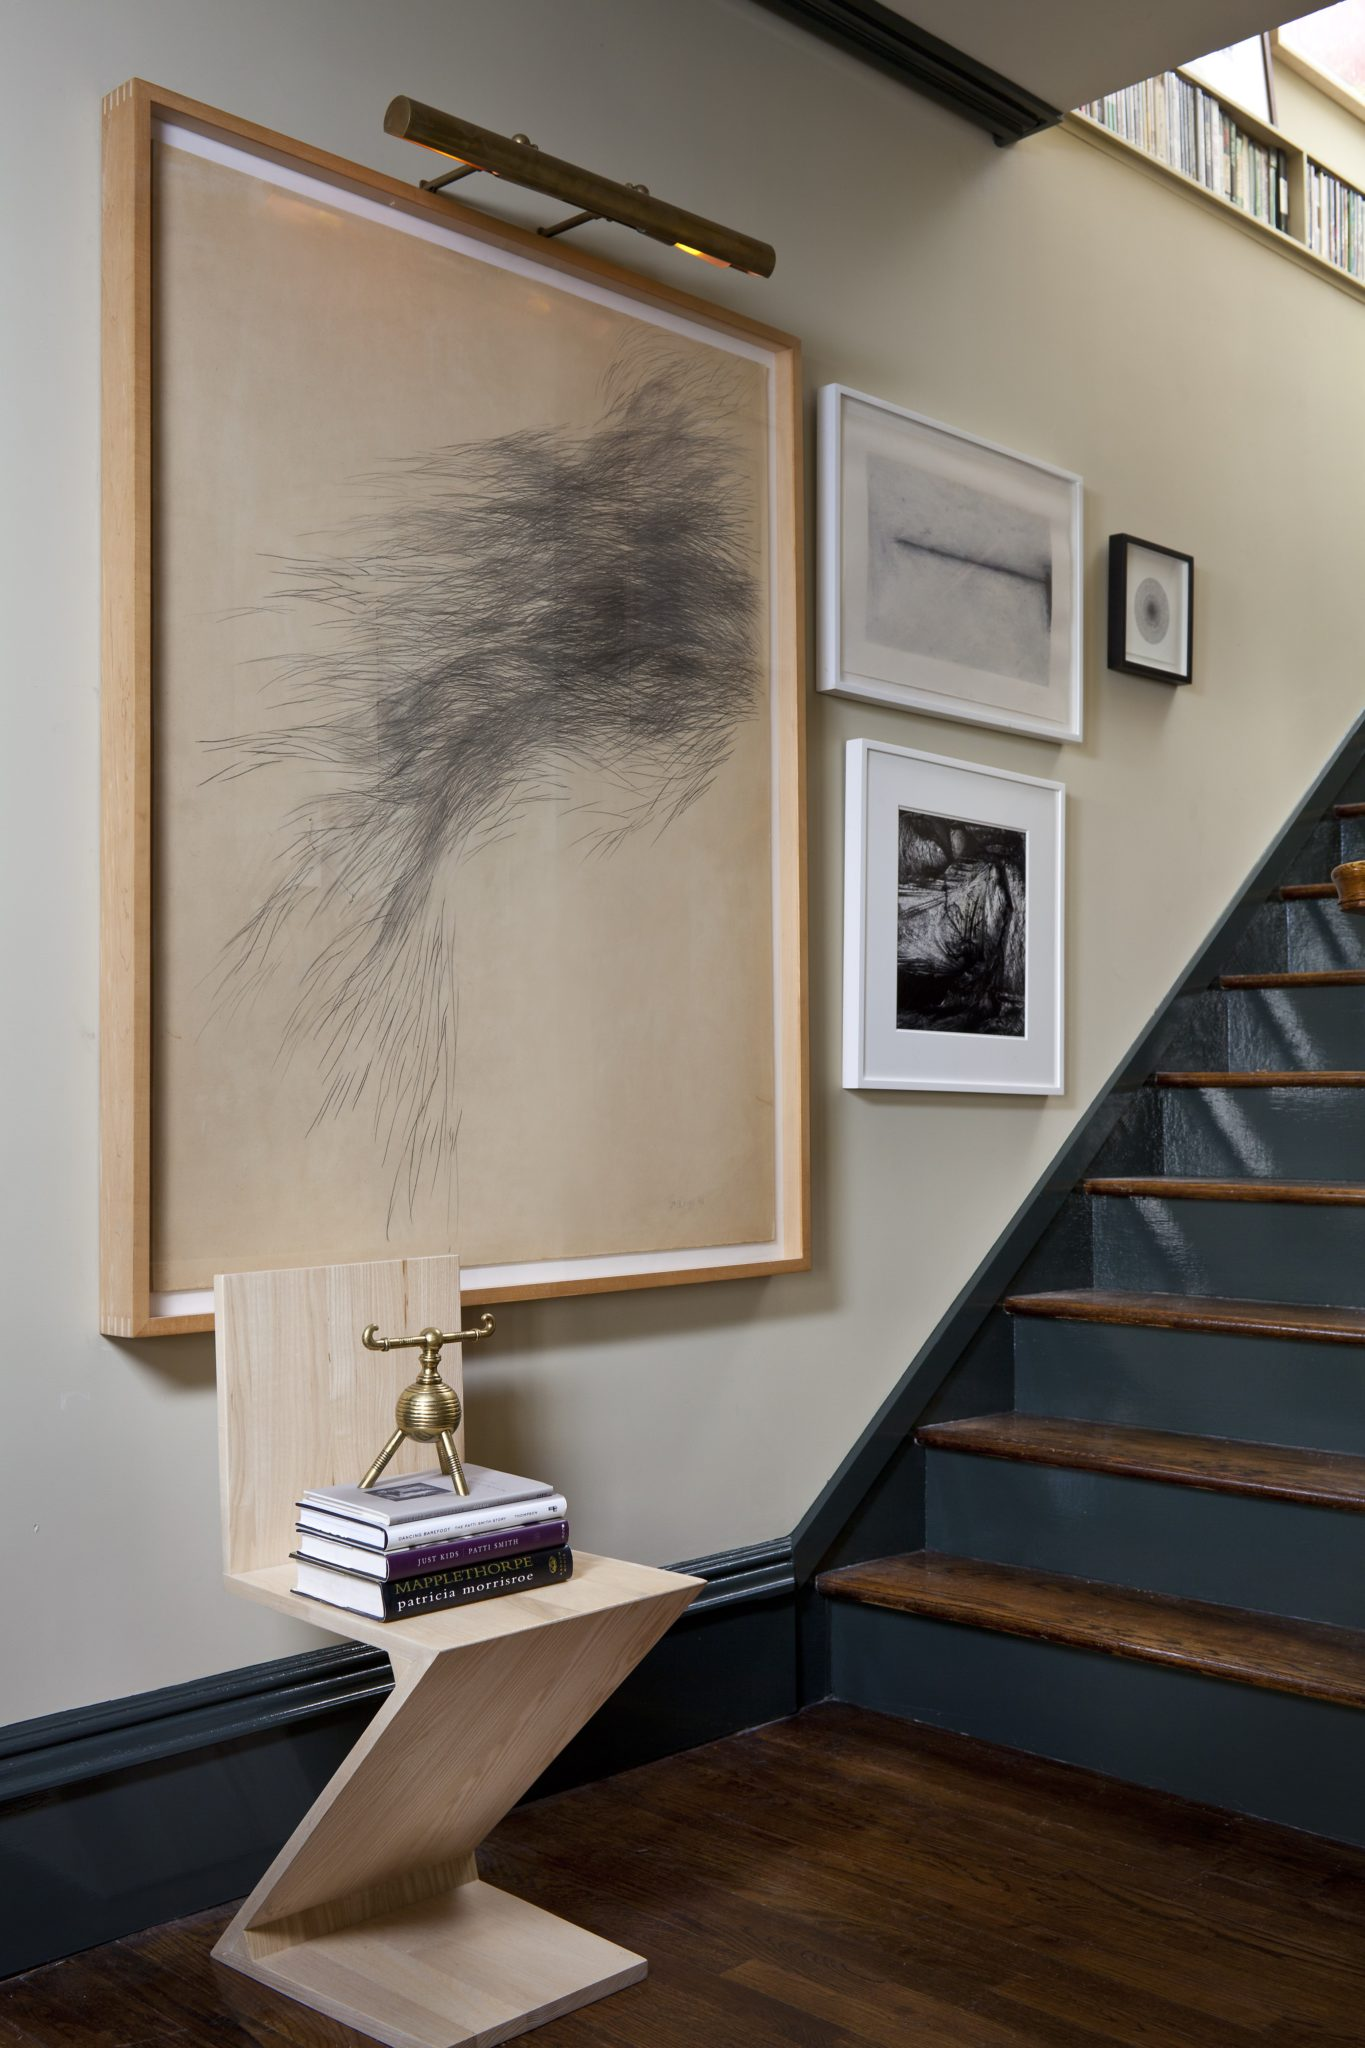 Eclectic art-filled stairwell in a townhouse by Glenn Gissler